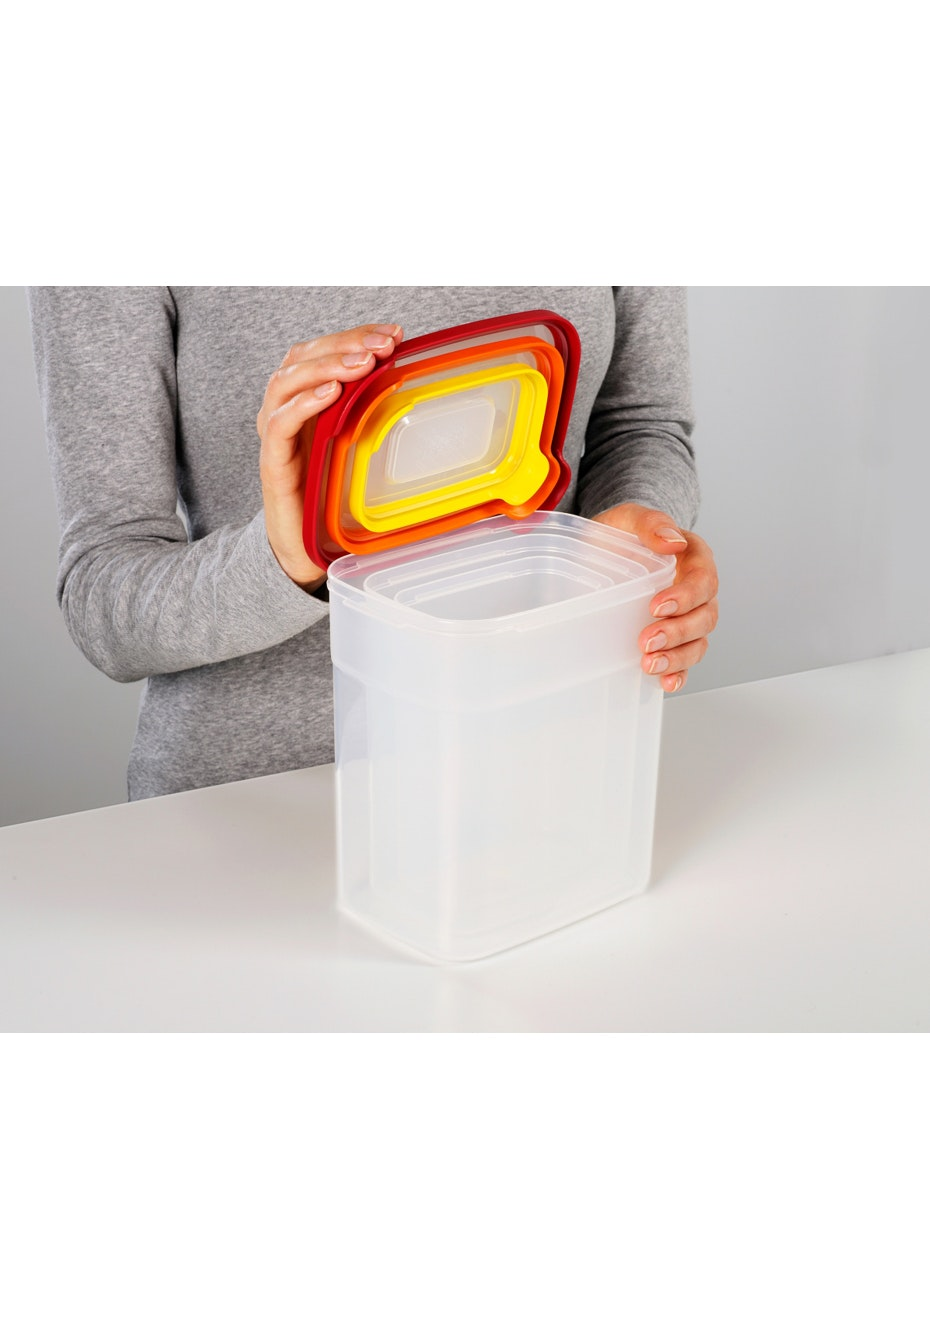 Joseph Joseph - Nest Food Storage Set